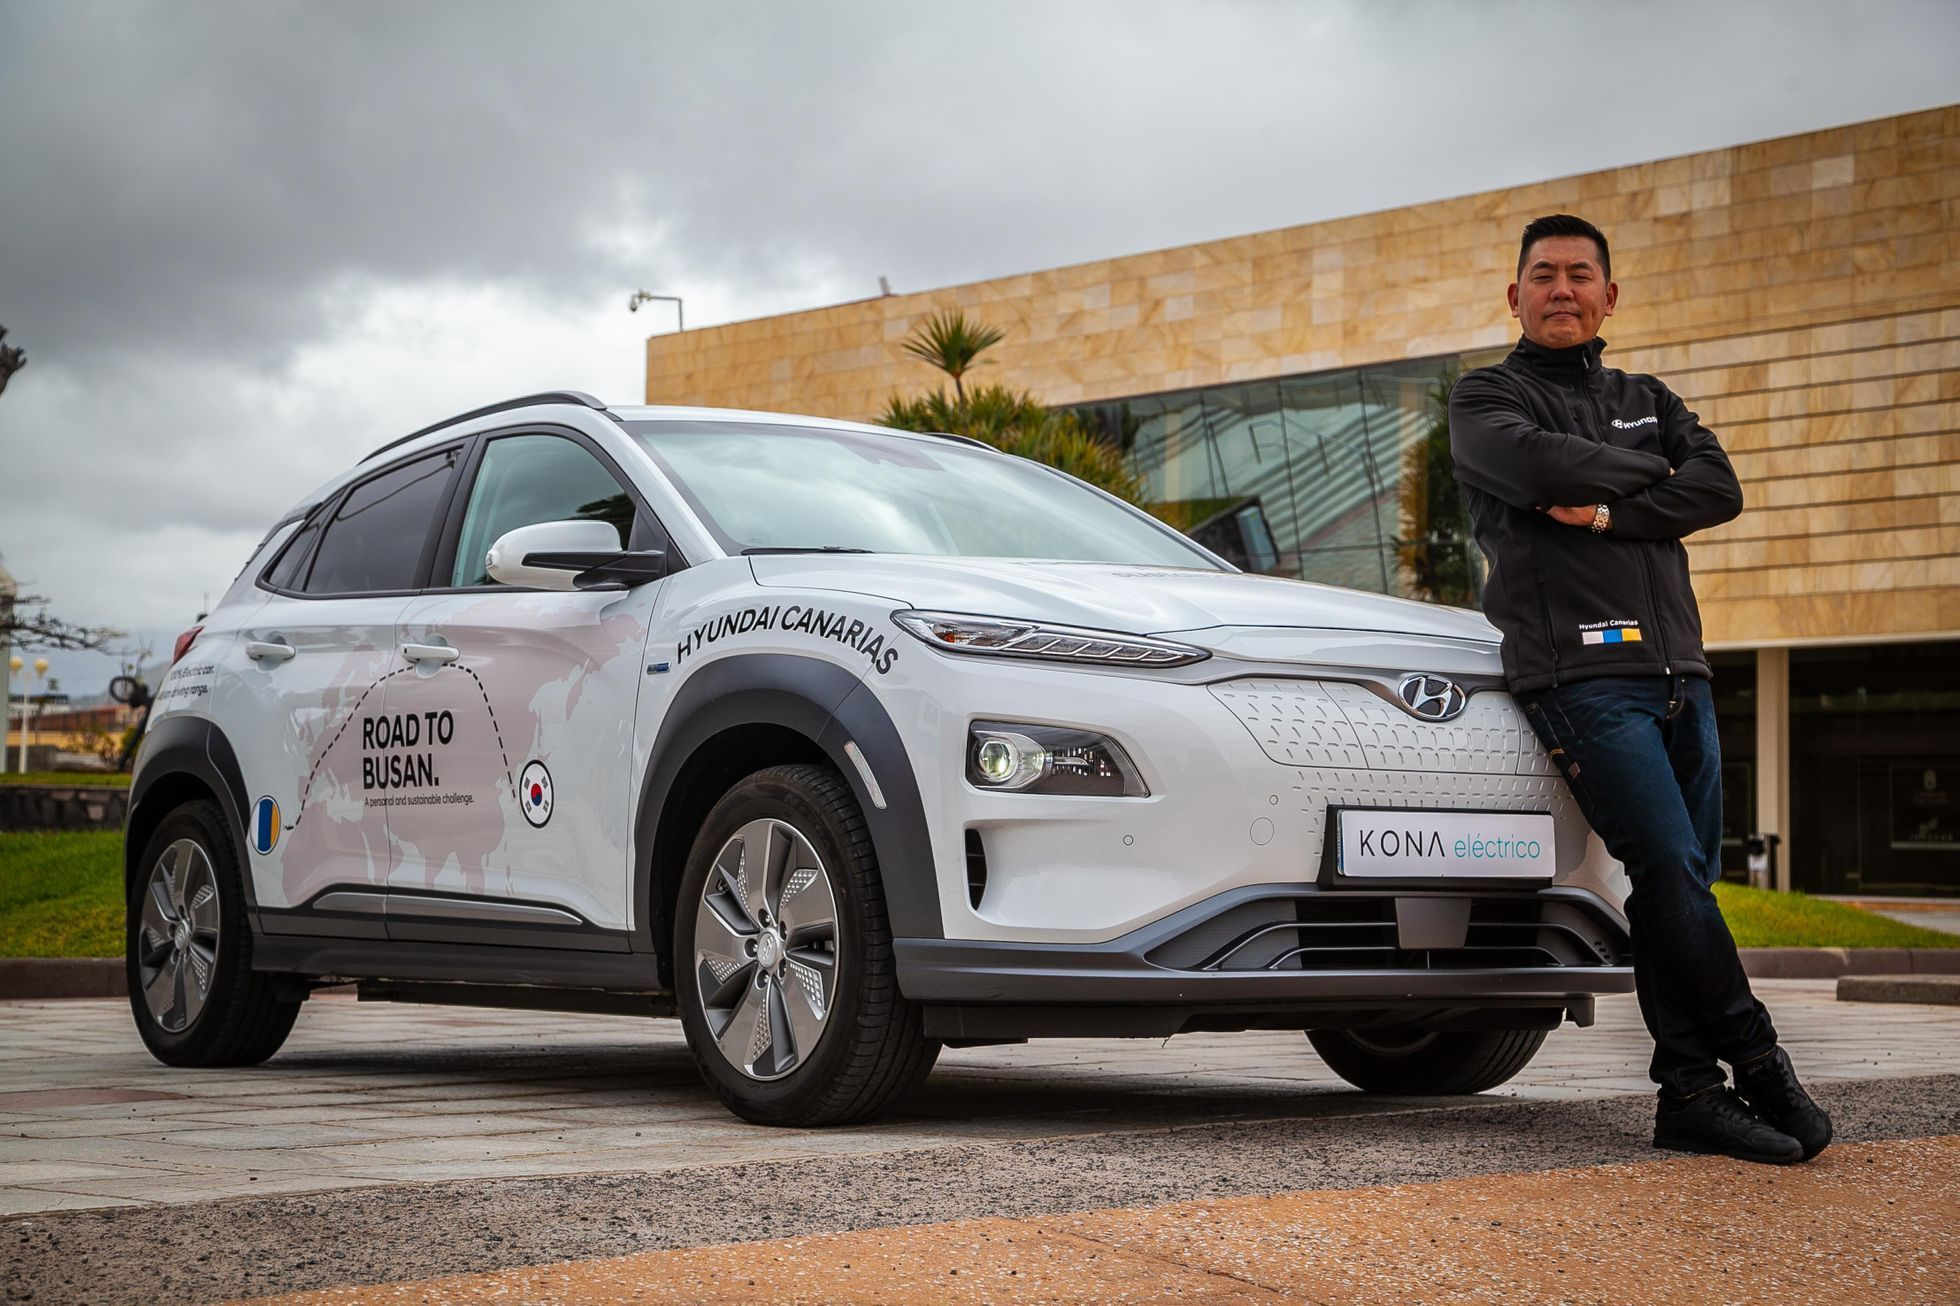 Hyundai Kona cesta do Koreje